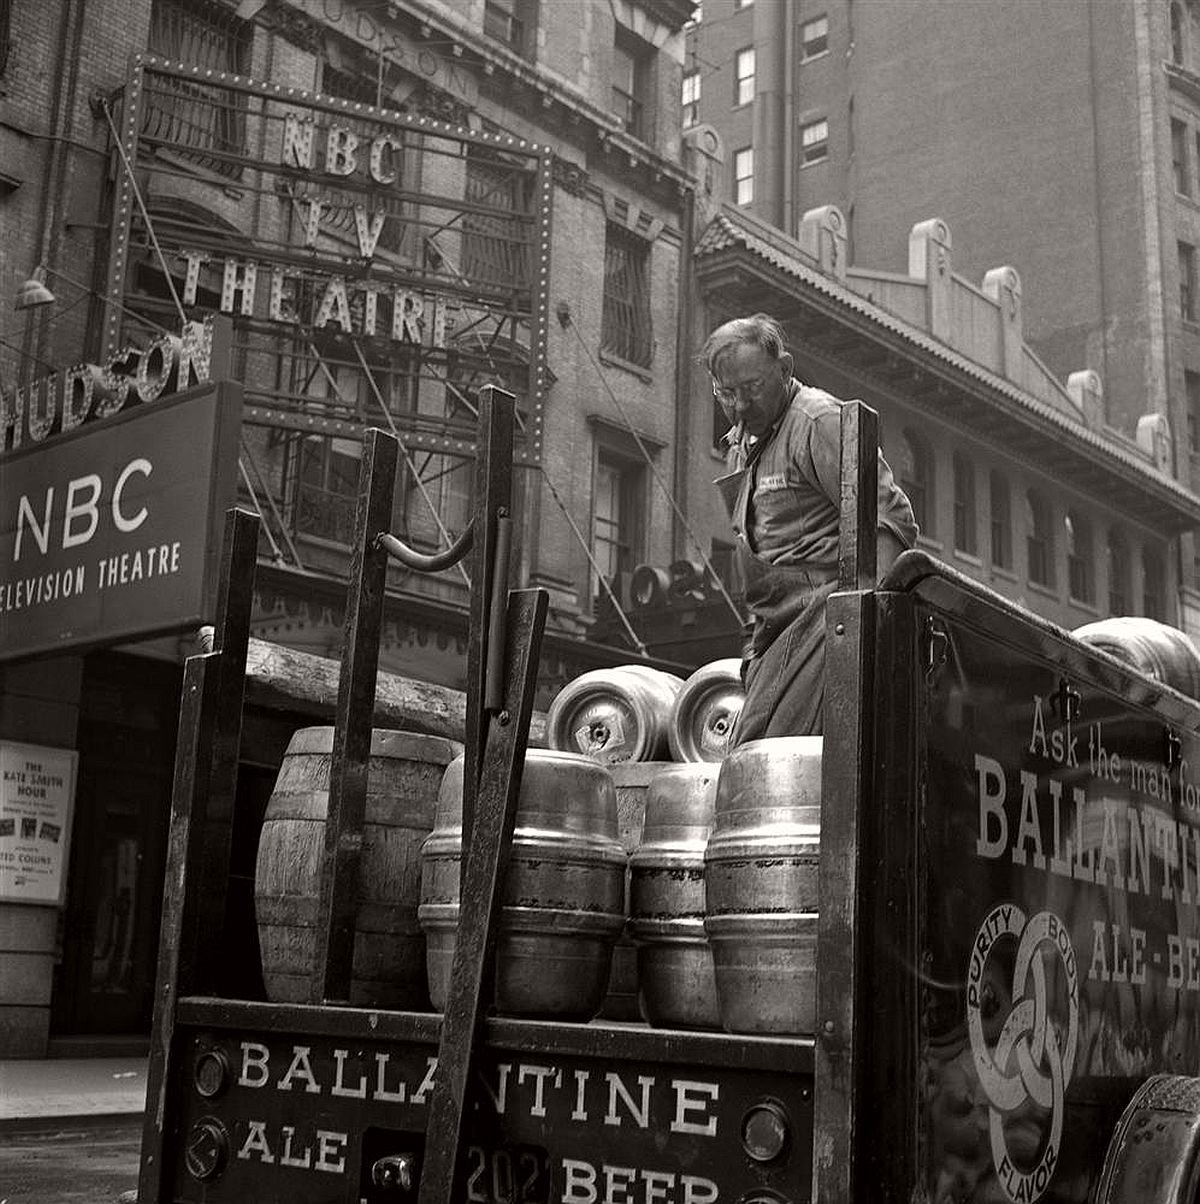 A Ballantine beer truck stops to make a delivery in front of the NBC Television Theatre.